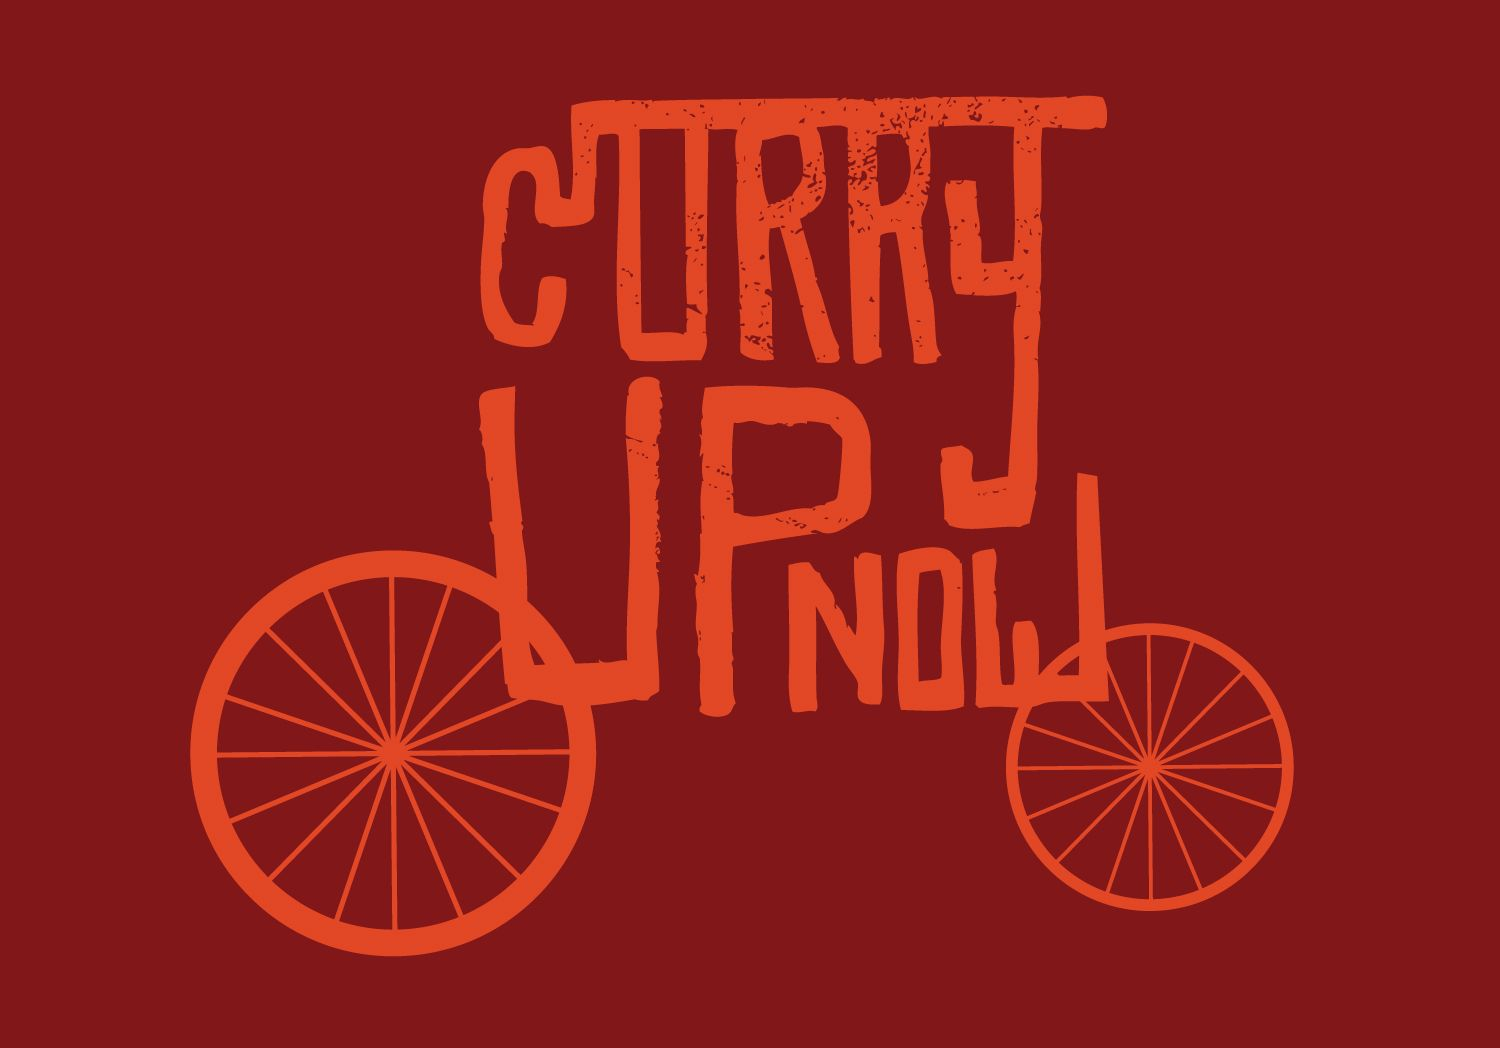 Curry up now food truck design food delivery logo